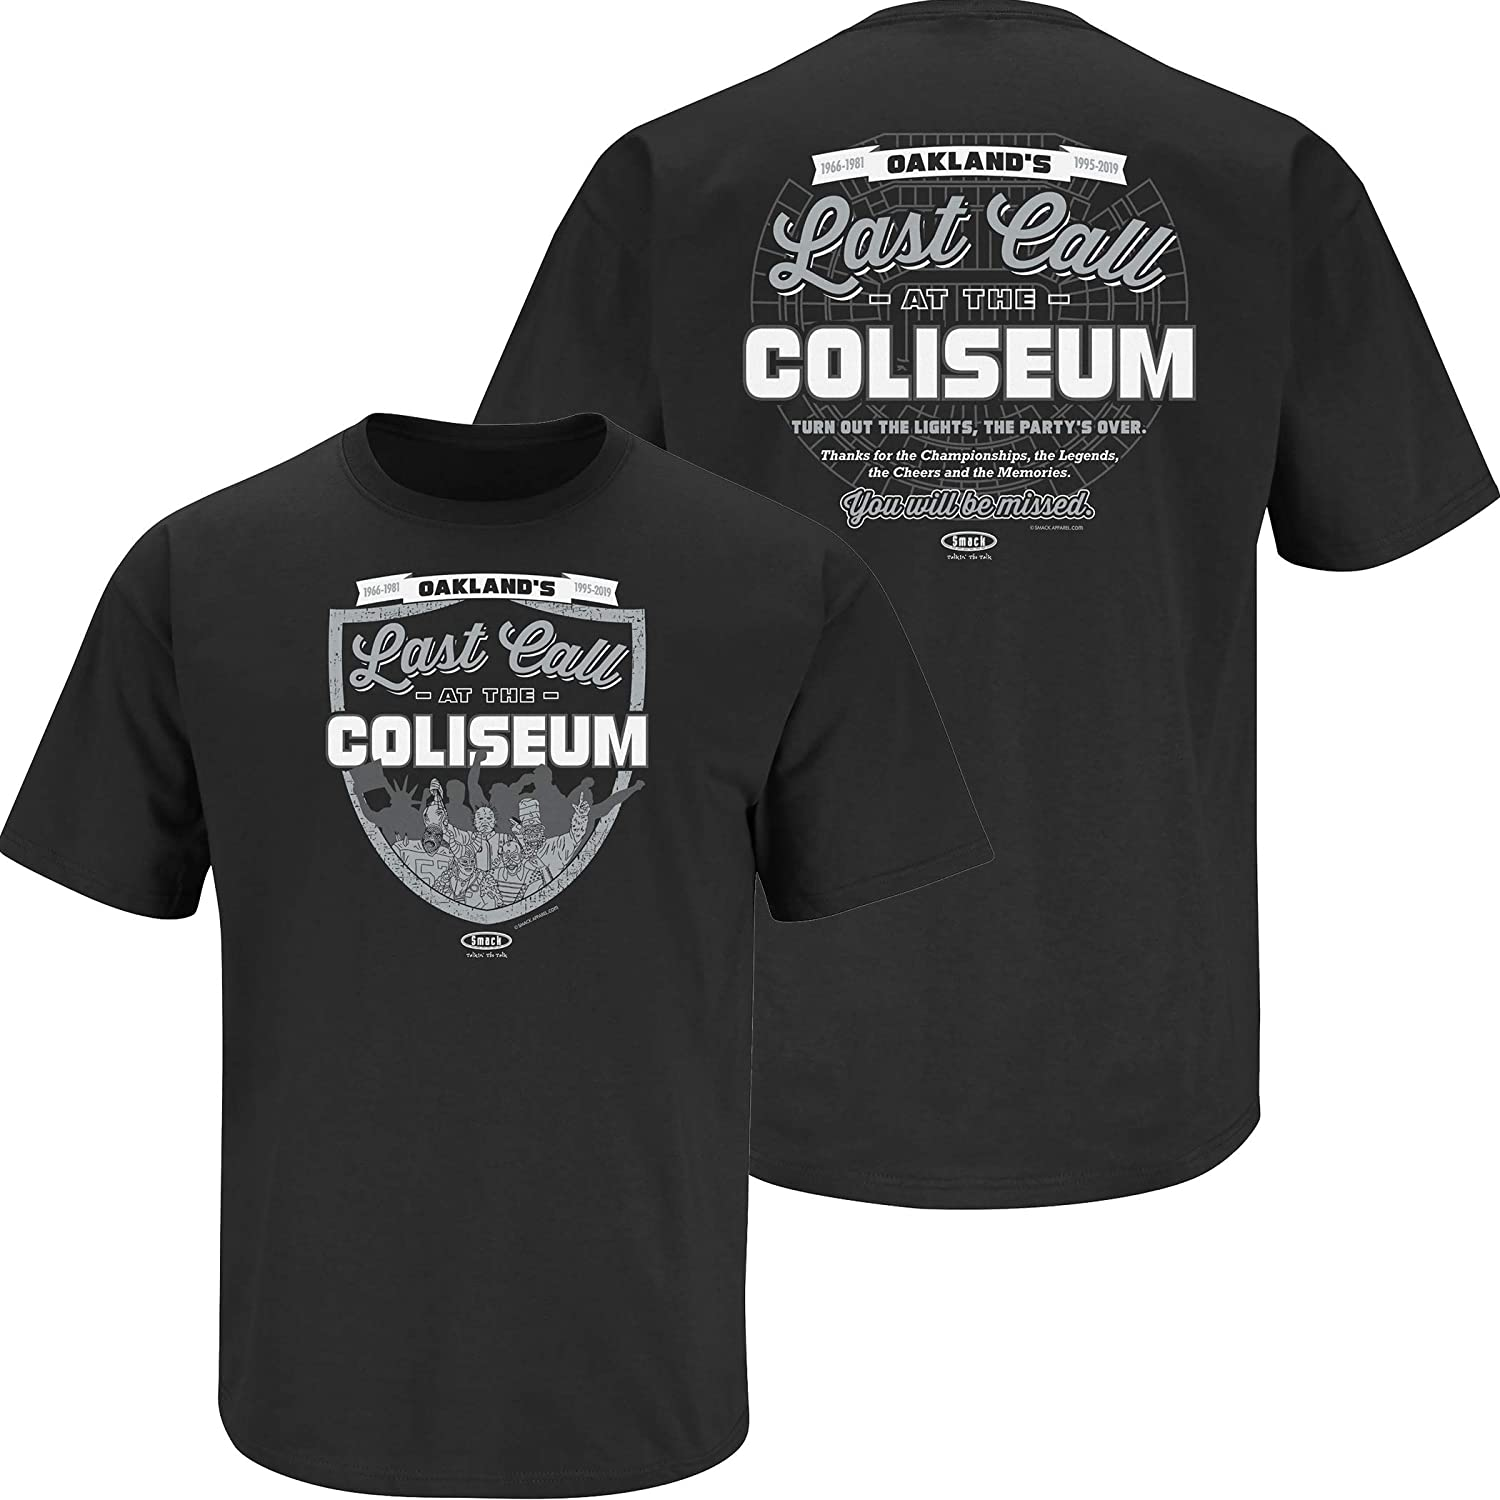 fe5c936786b Raider Football Fans. Last Call at The Coliseum Black T-Shirt (Sm-5x)